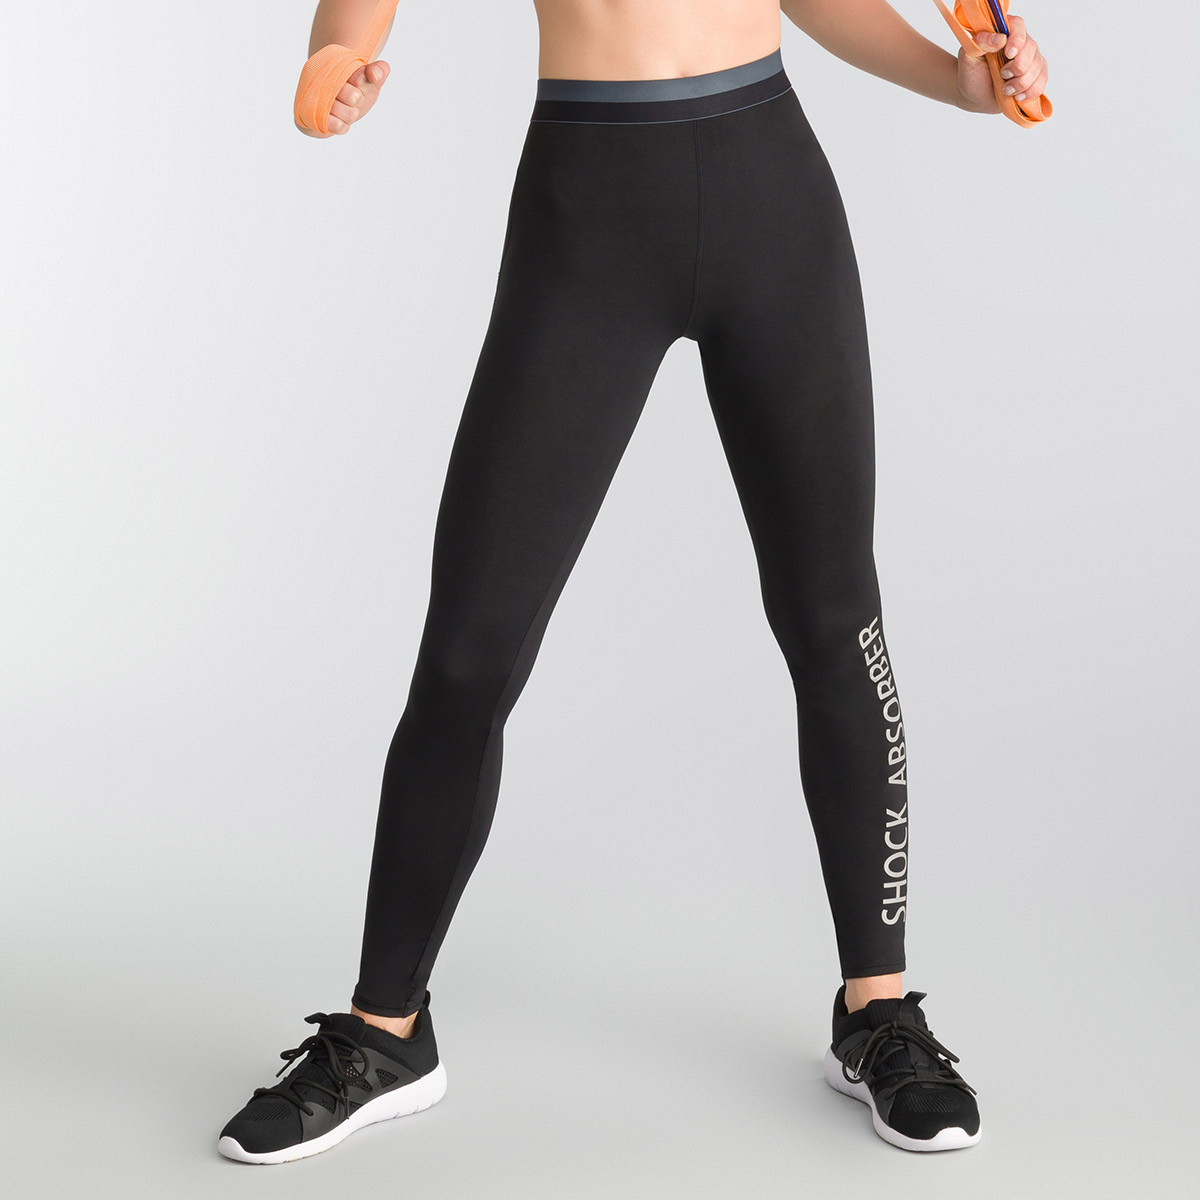 Legging deportivo Active Wear negro Shock Absorber, , DIM